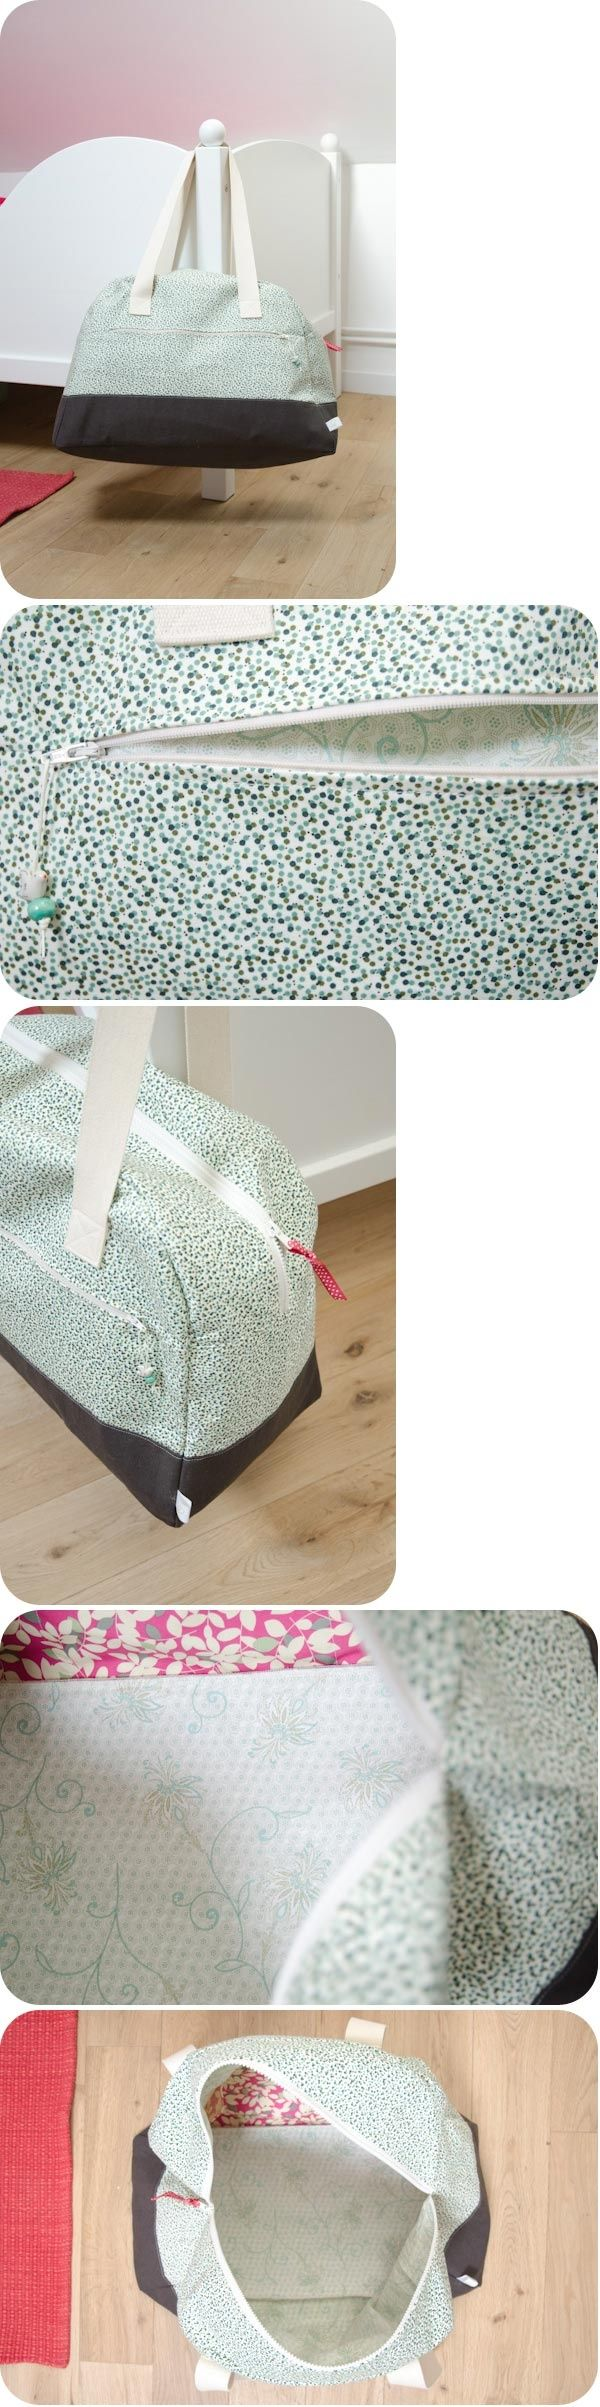 A weekend bag sewing tutorial @ashpeeps... will you make me this? ;)